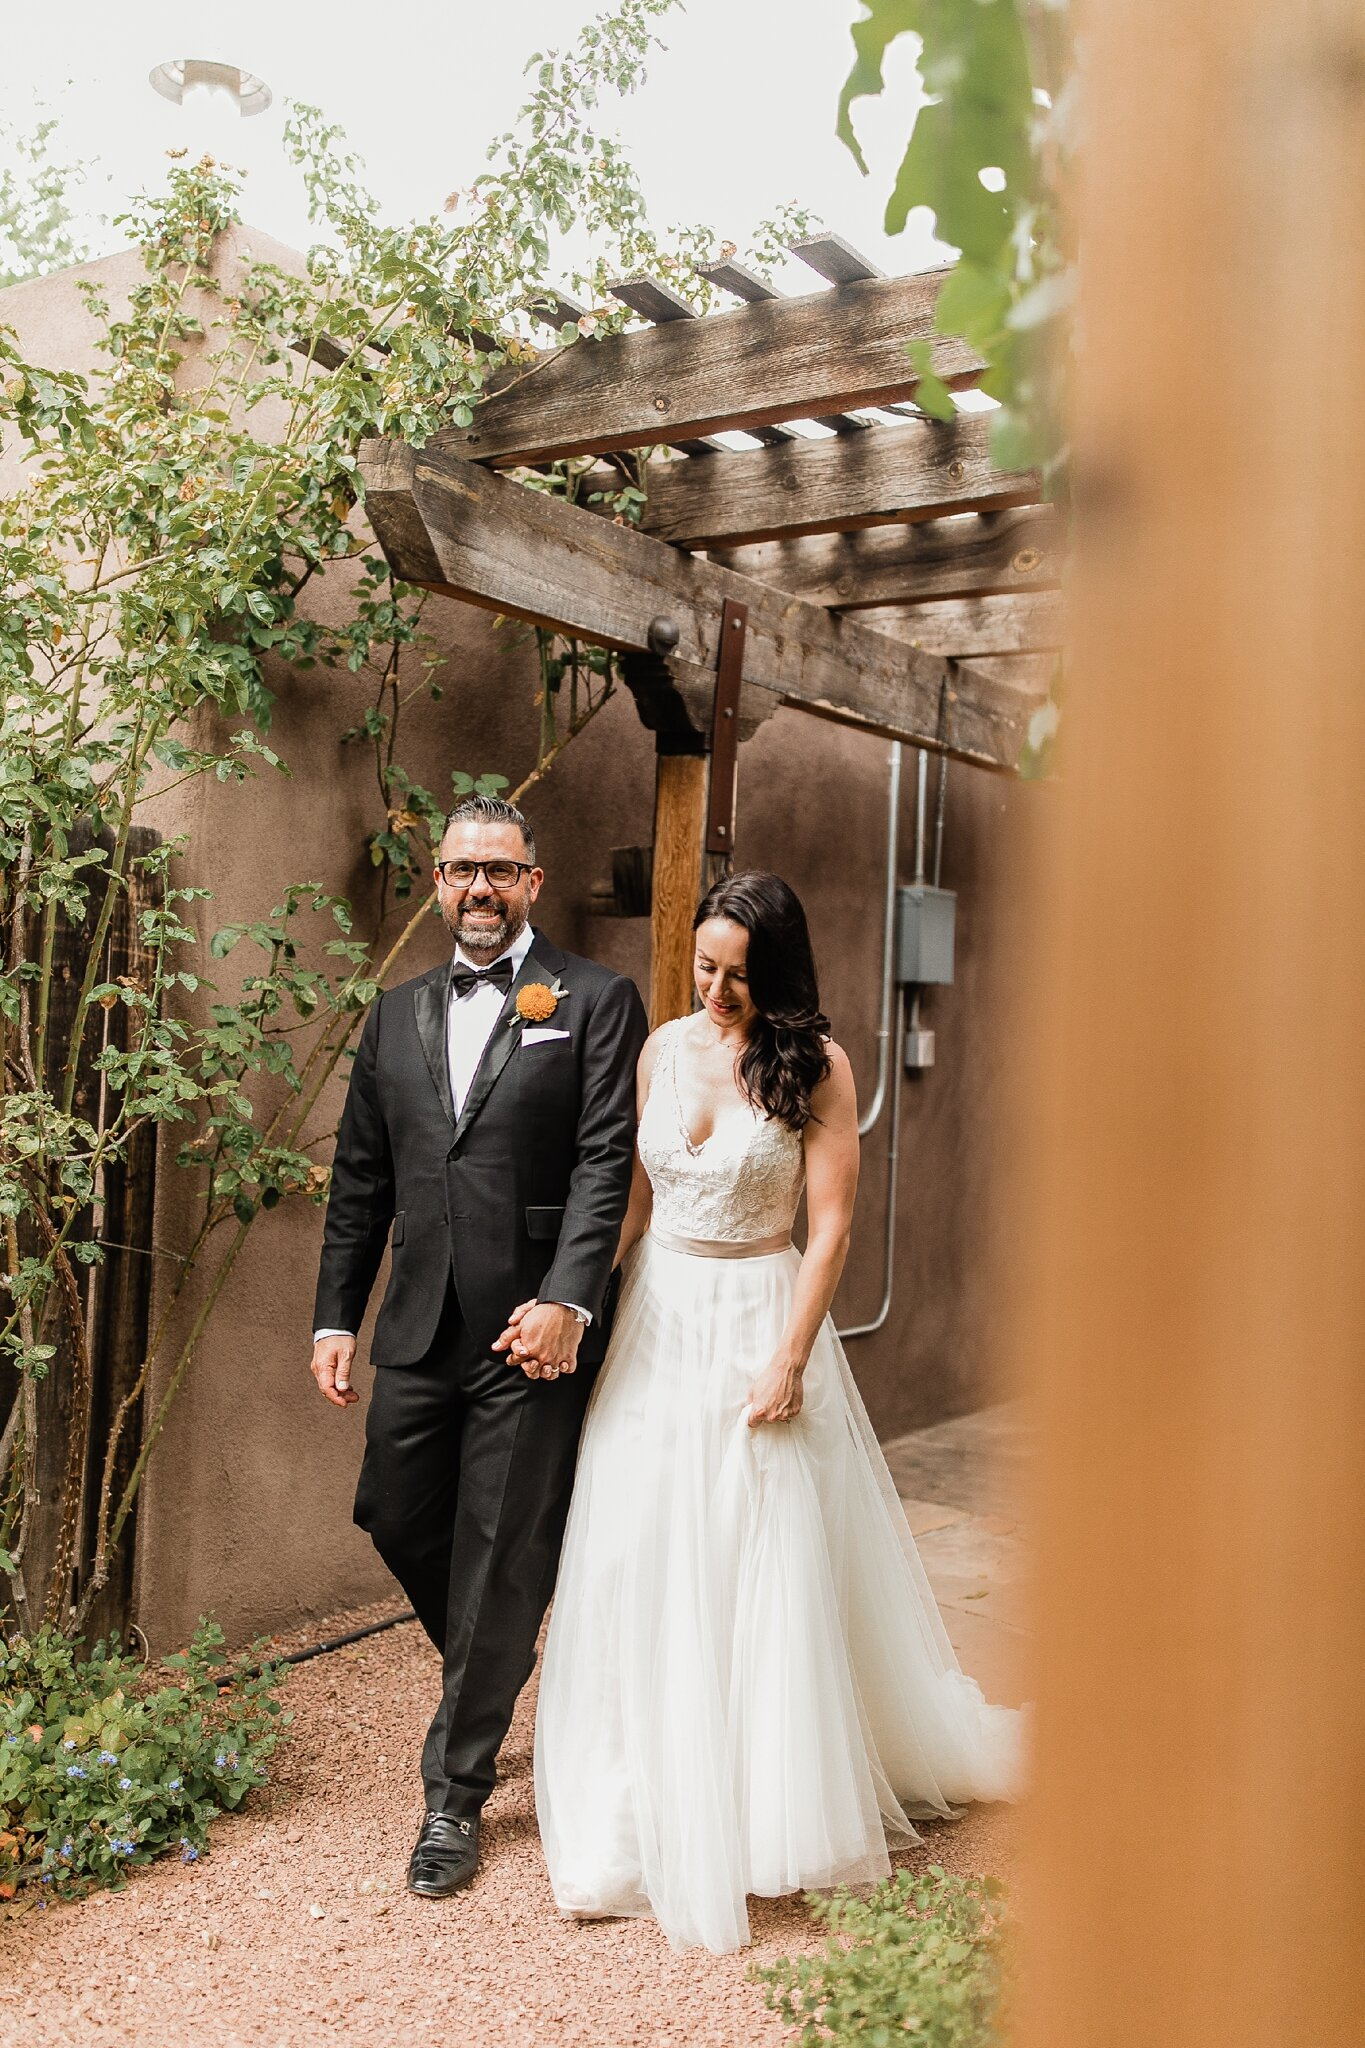 Alicia+lucia+photography+-+albuquerque+wedding+photographer+-+santa+fe+wedding+photography+-+new+mexico+wedding+photographer+-+new+mexico+wedding+-+bed+and+breakfast+wedding+-+sarabande+wedding+-+sarabande+bed+and+breakfast+wedding_0052.jpg